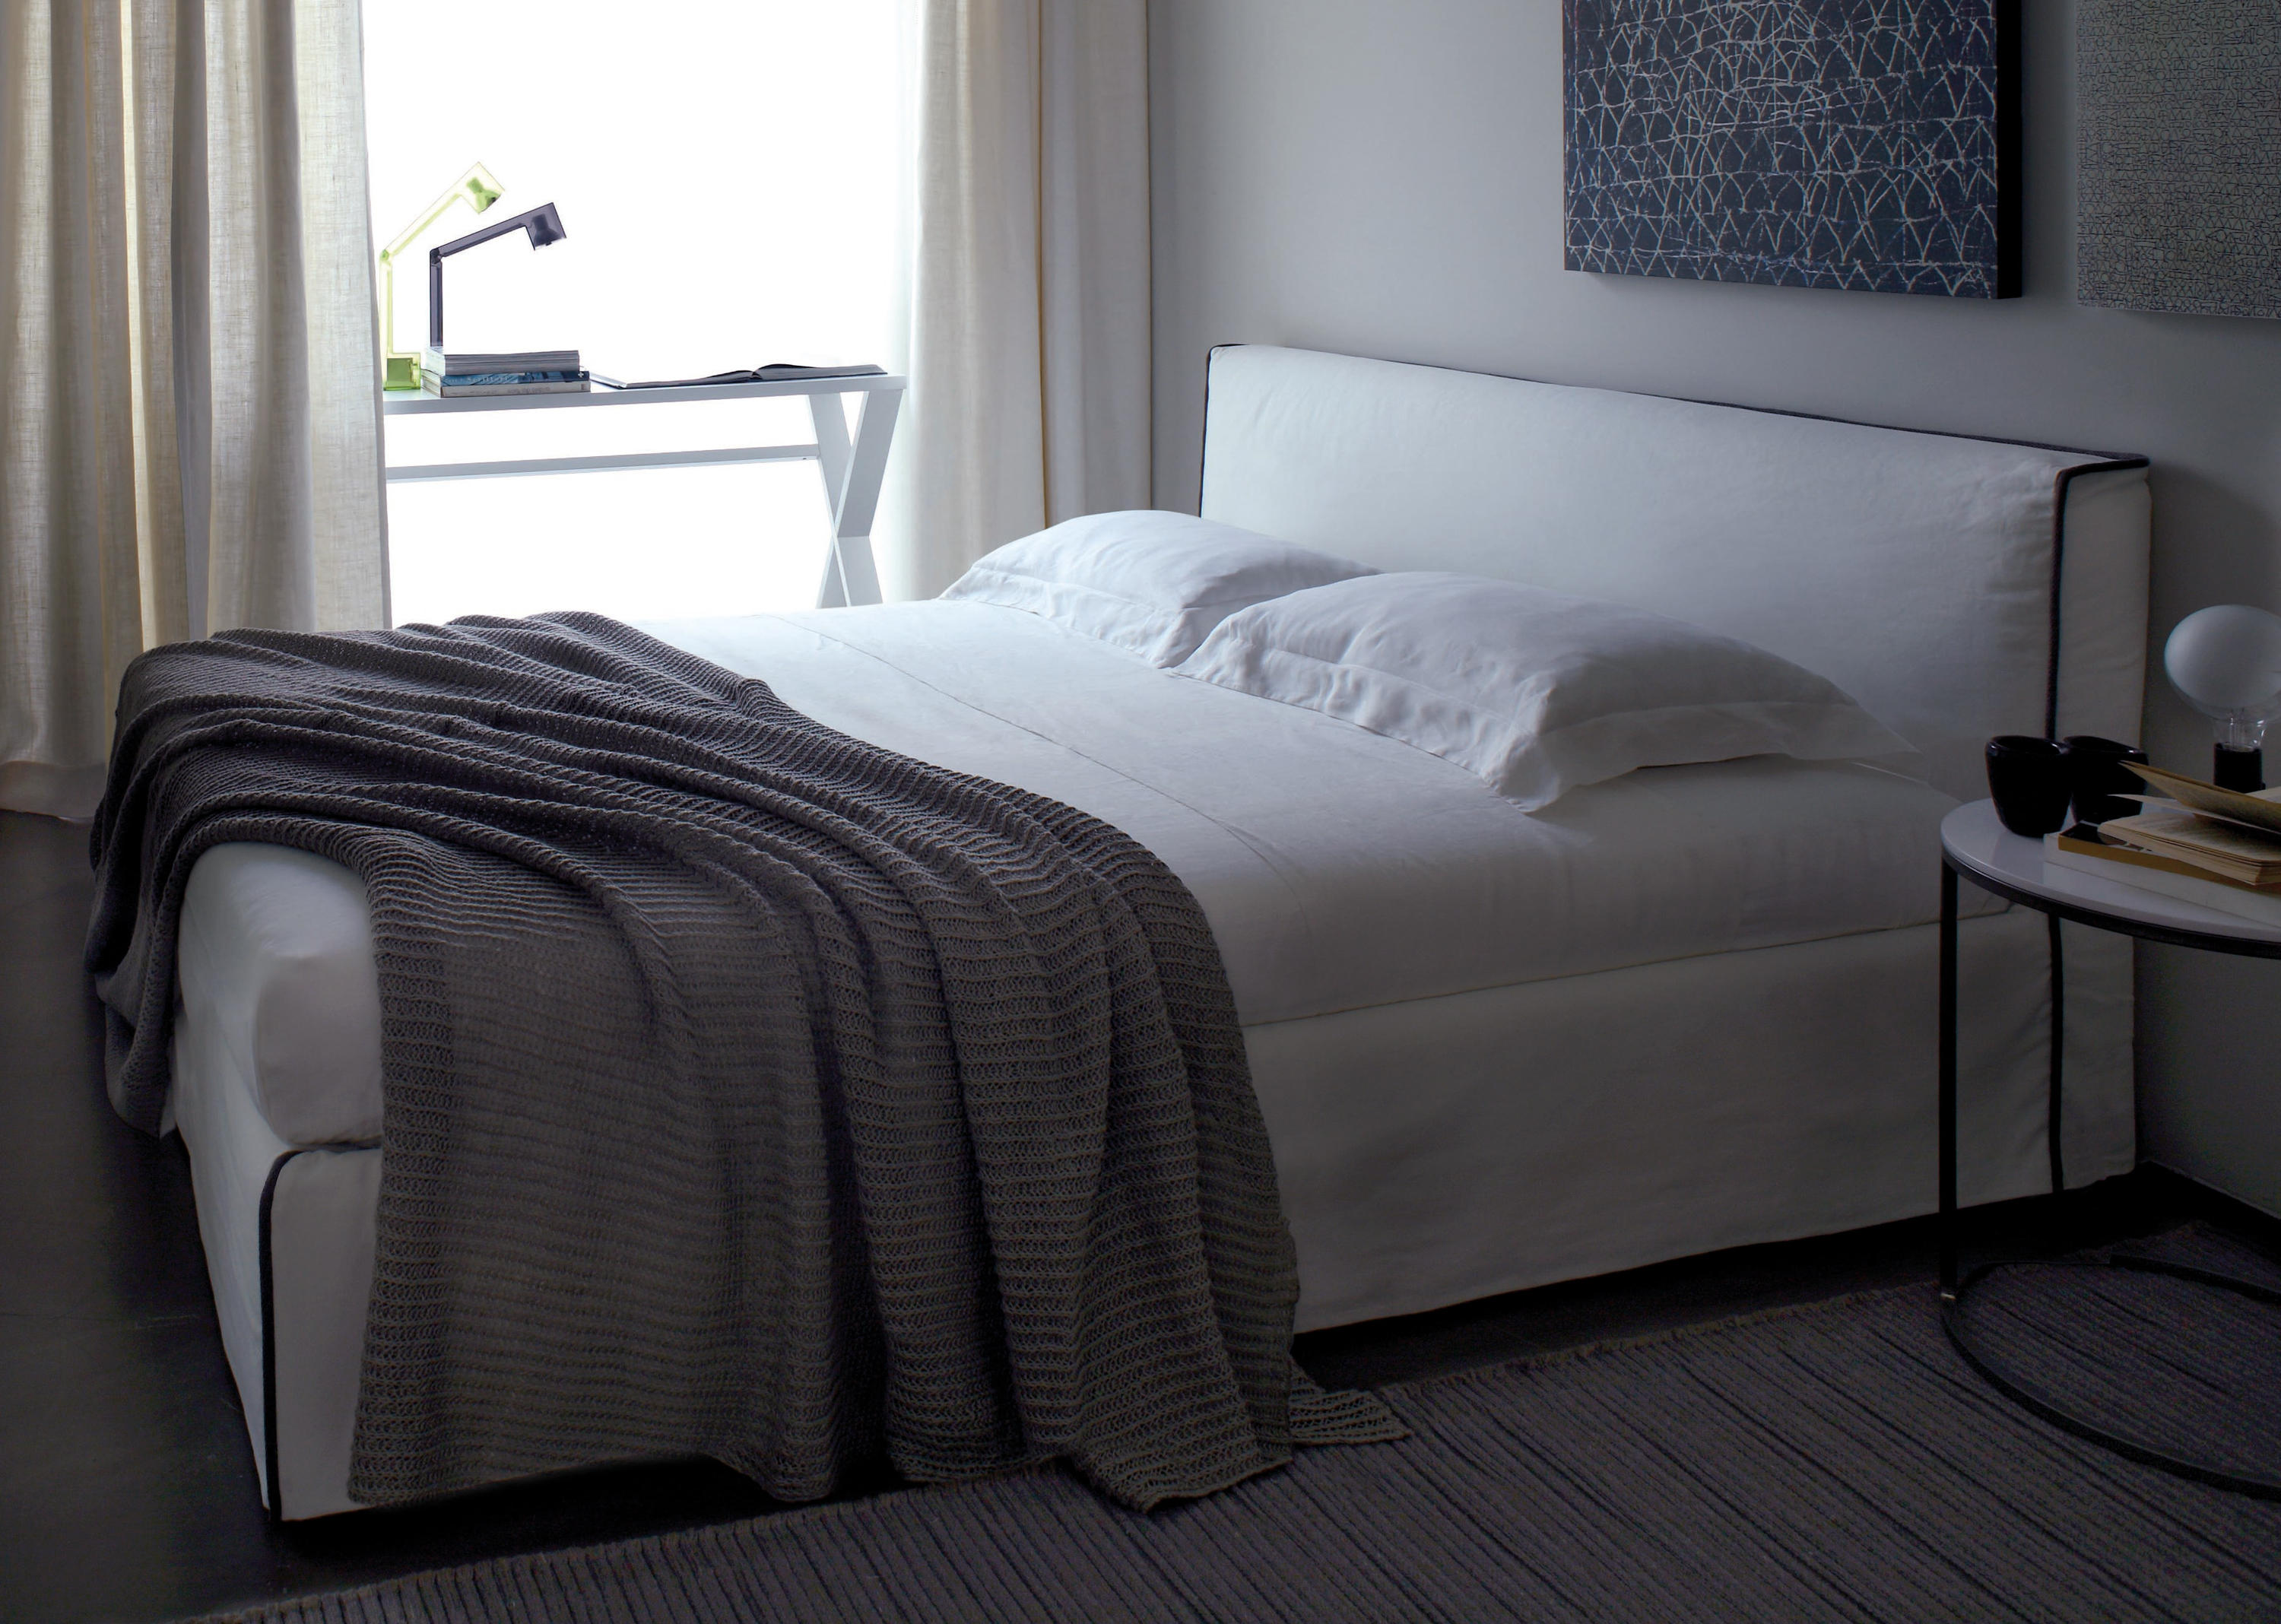 Bed MeridianiArchitonic Beds From Beds From Law Bed Law MeridianiArchitonic 5Rjq4AL3